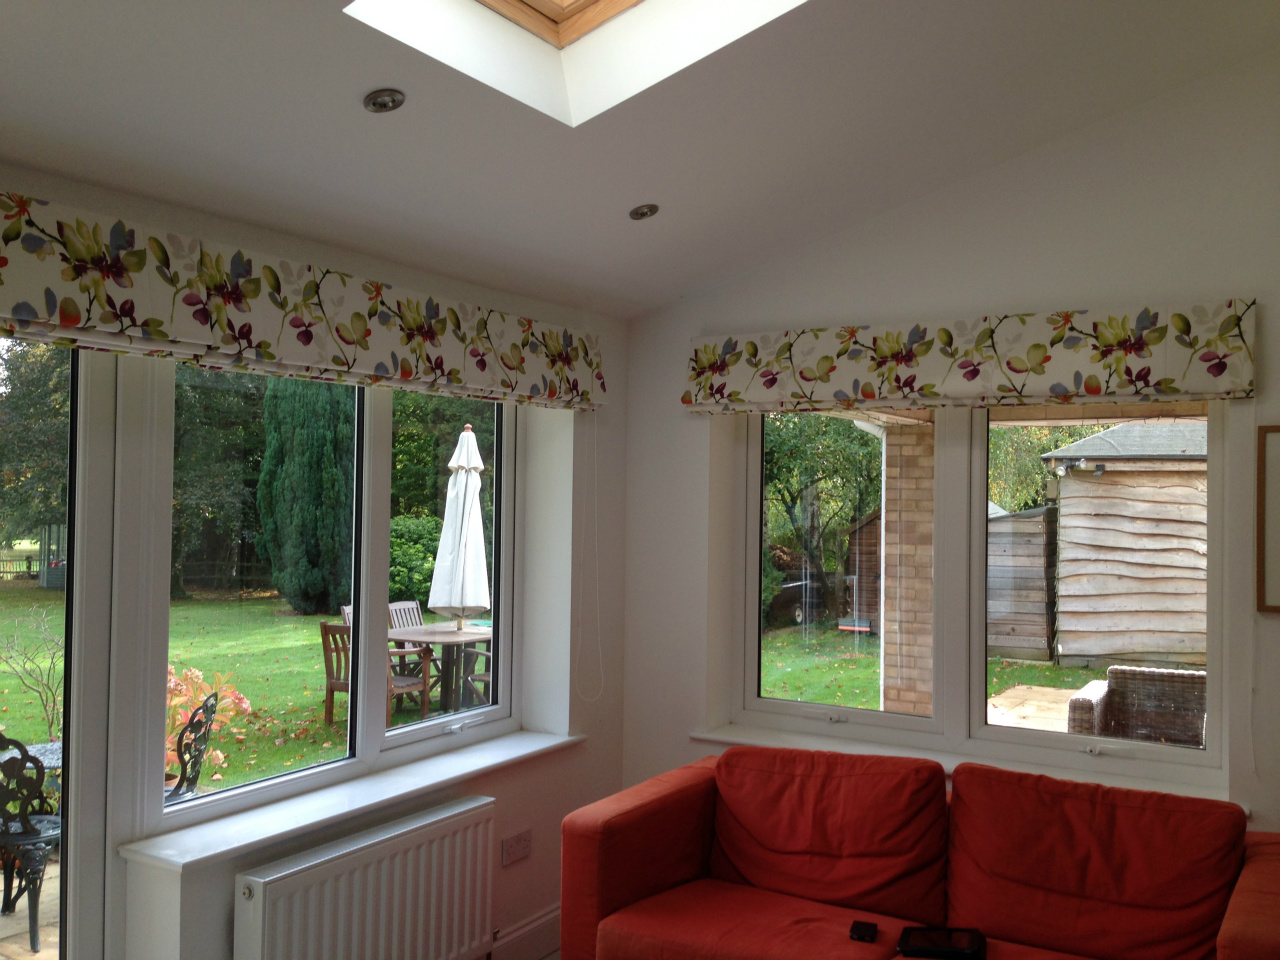 Roman Blinds For Kitchens Gallery 1 Wwwsuecardycom